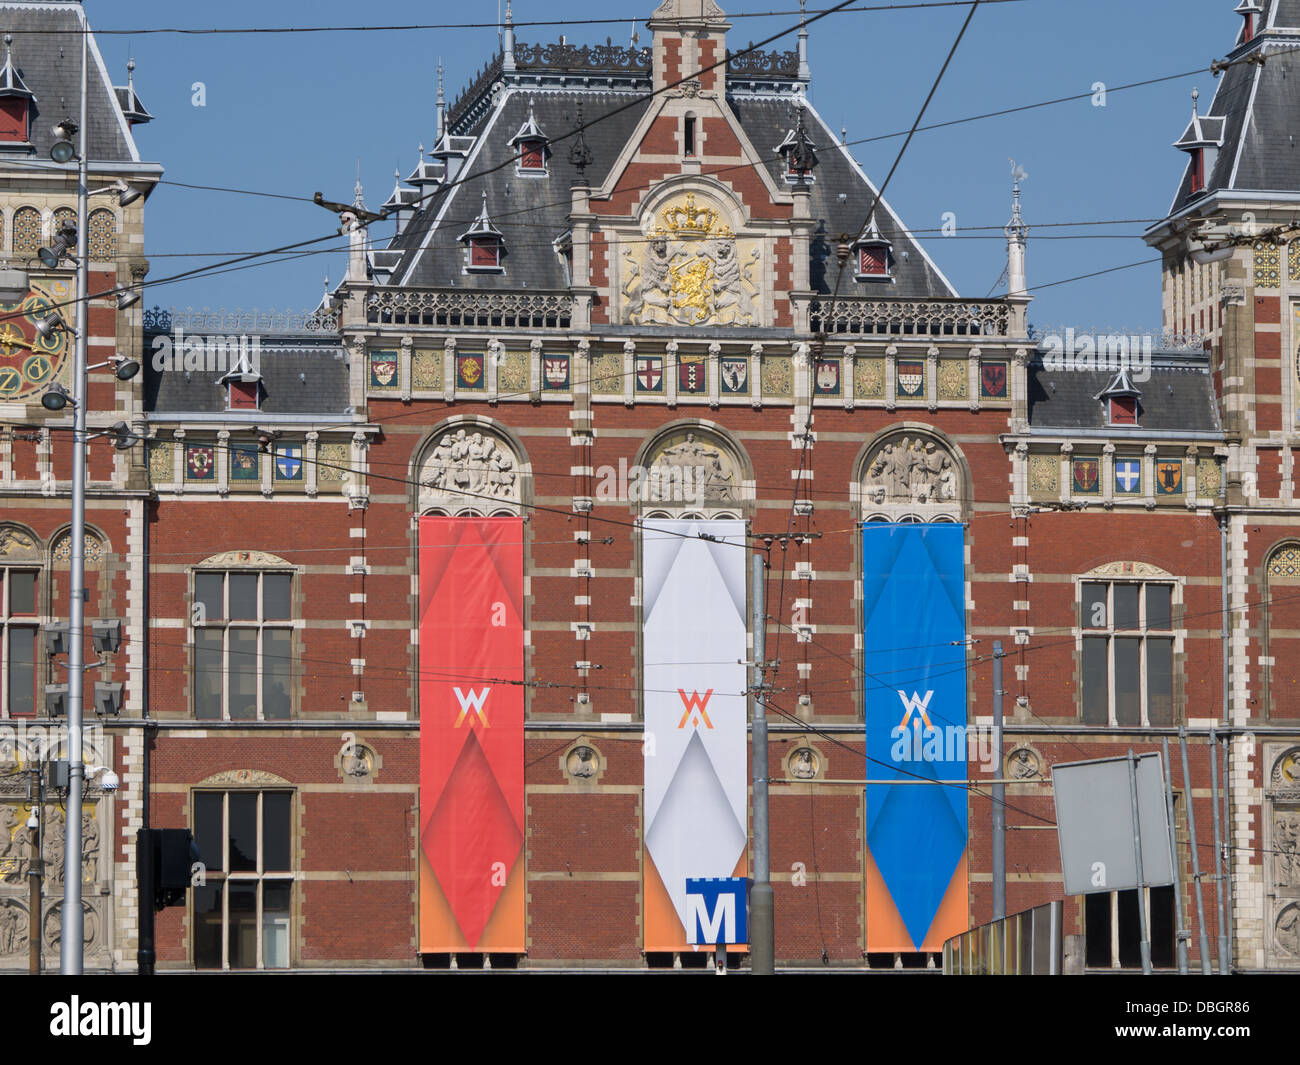 The Amsterdam Centraal railway station opened in 1889 and is built in Dutch renaissance style like the world famous - Stock Image